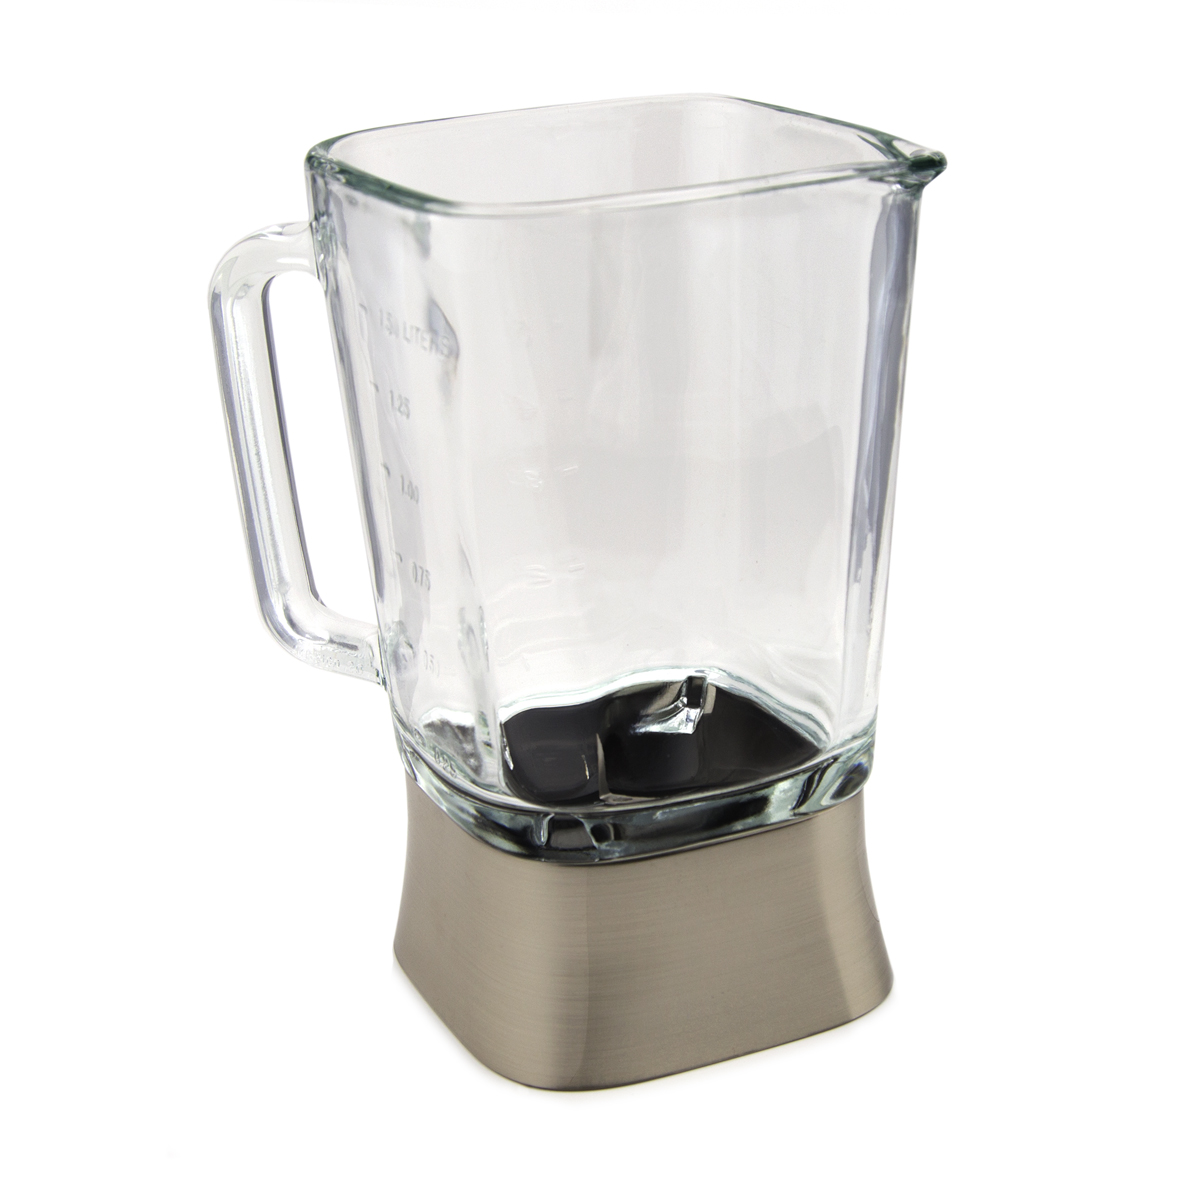 Oster 174 6 Cup Glass Blender Jar 139851 001 000 Oster Canada